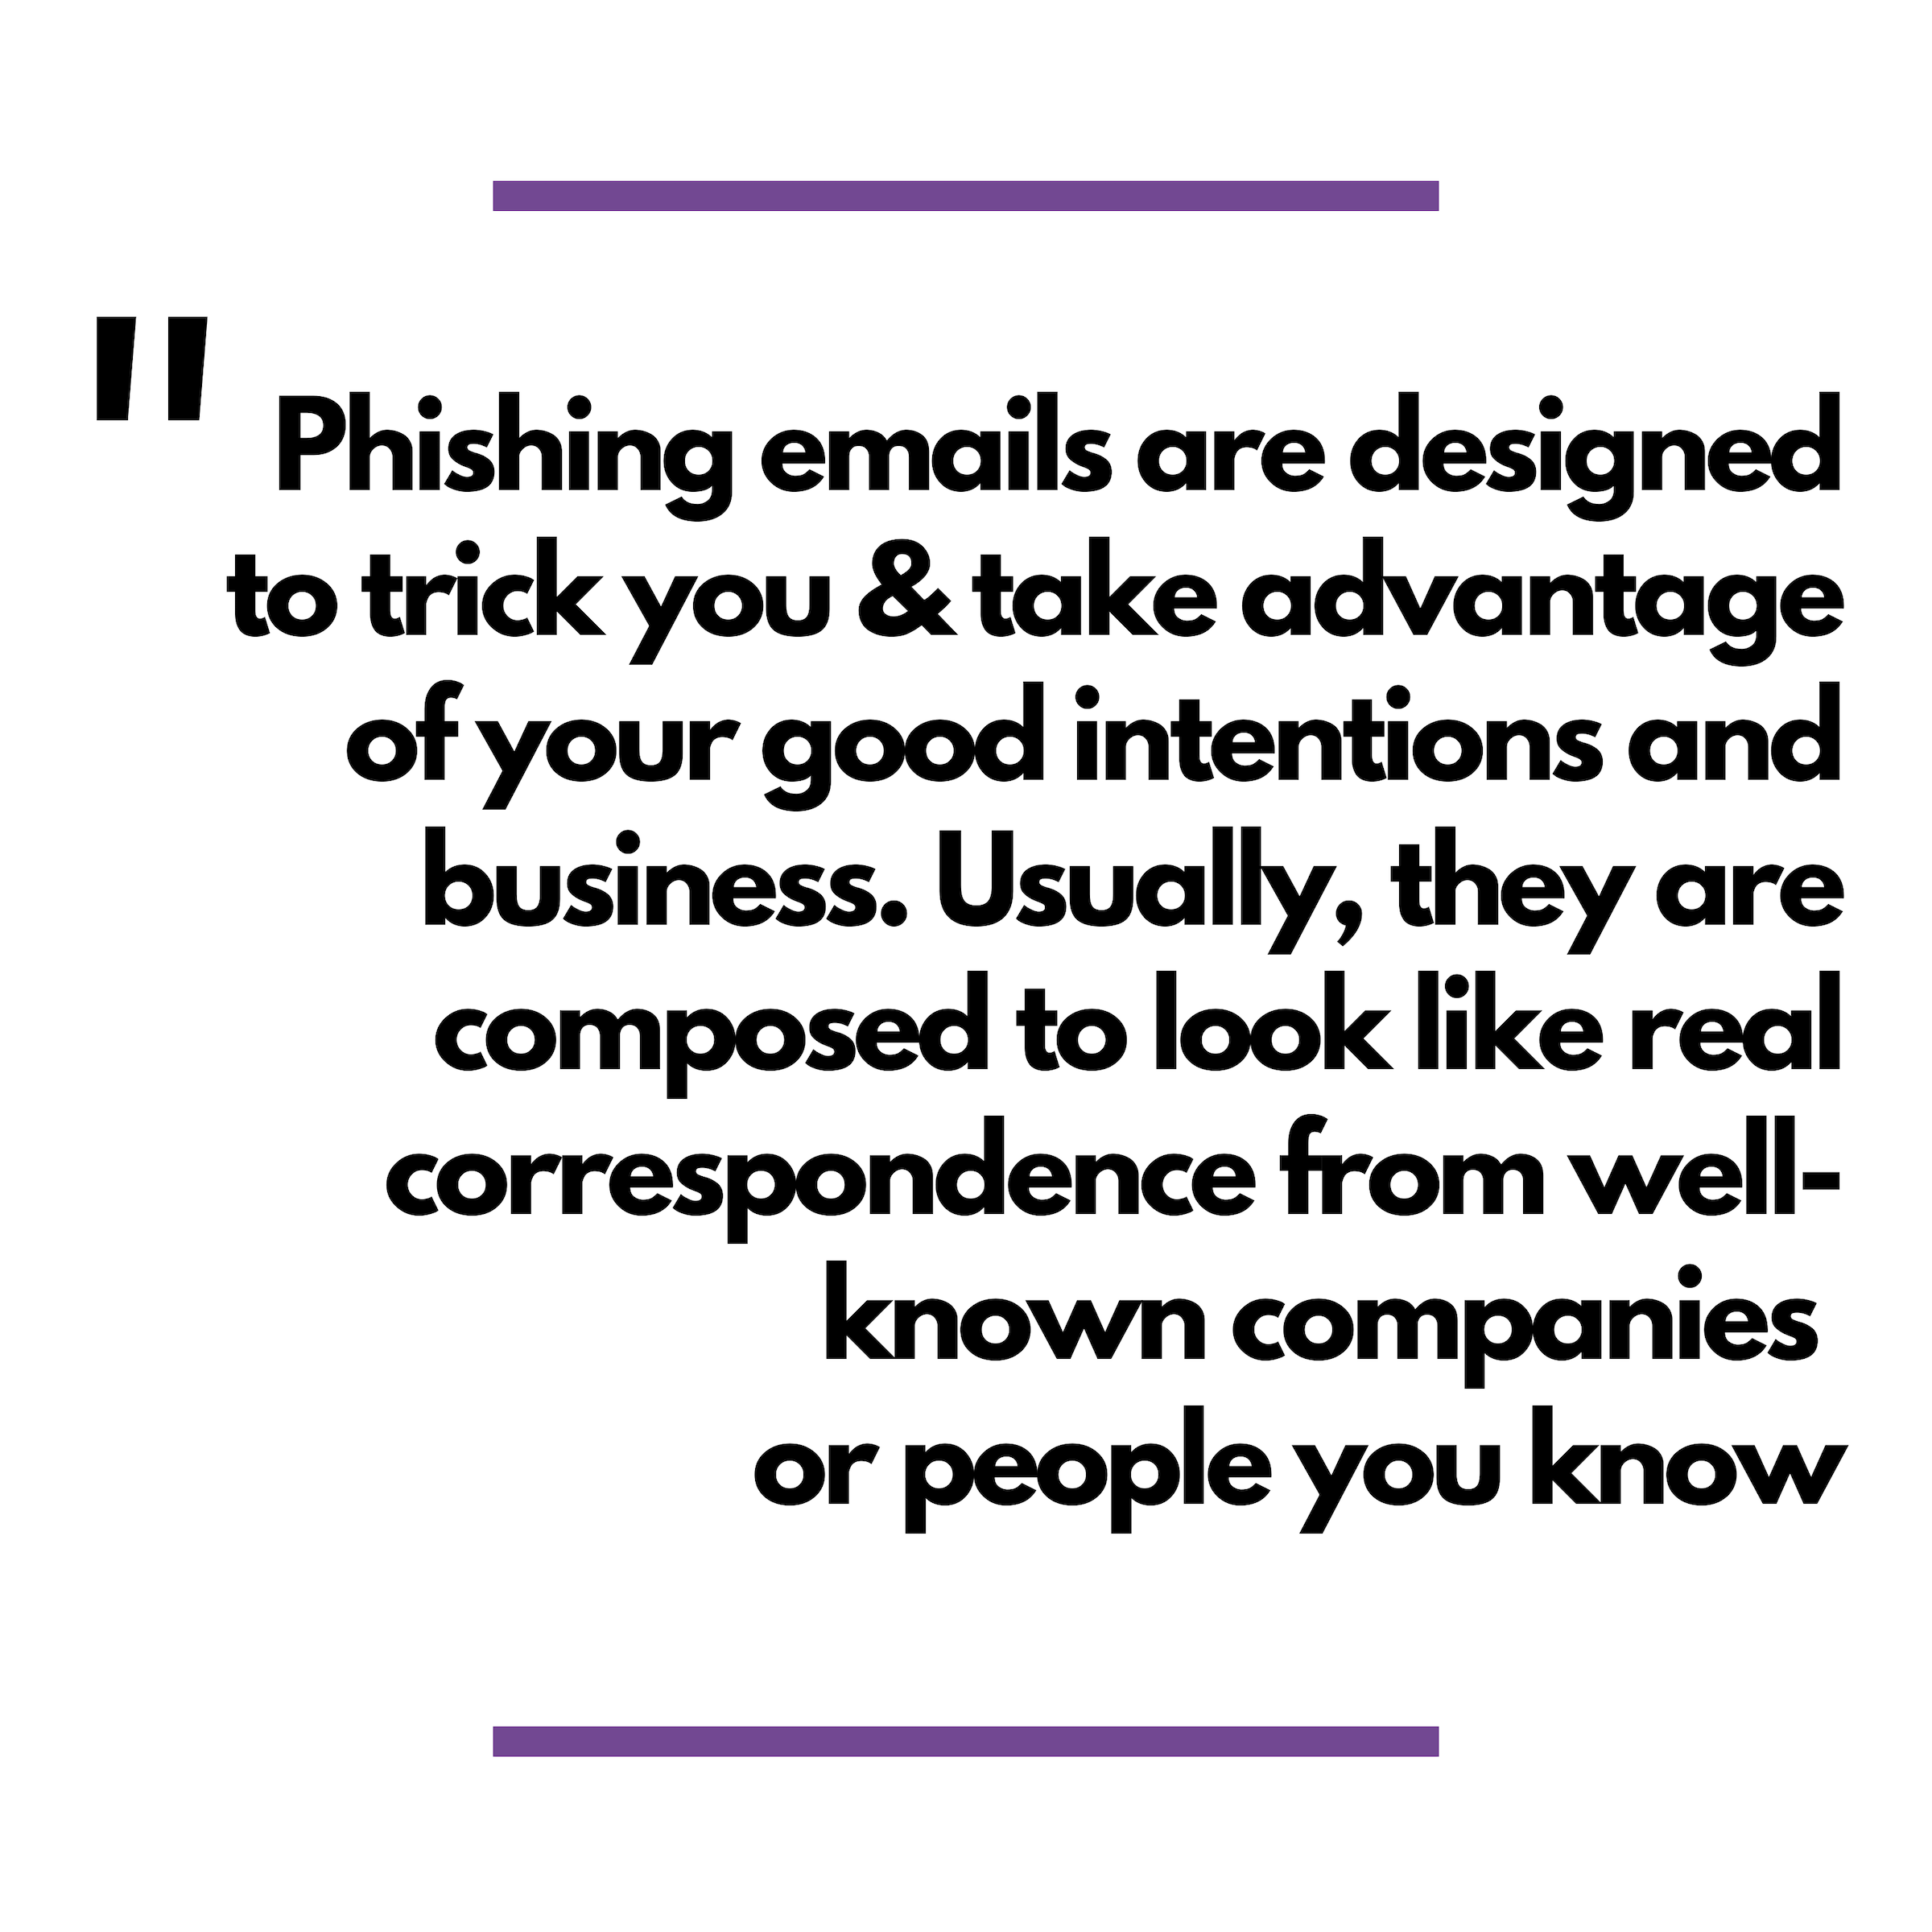 Phishing emails are designed to trick you.